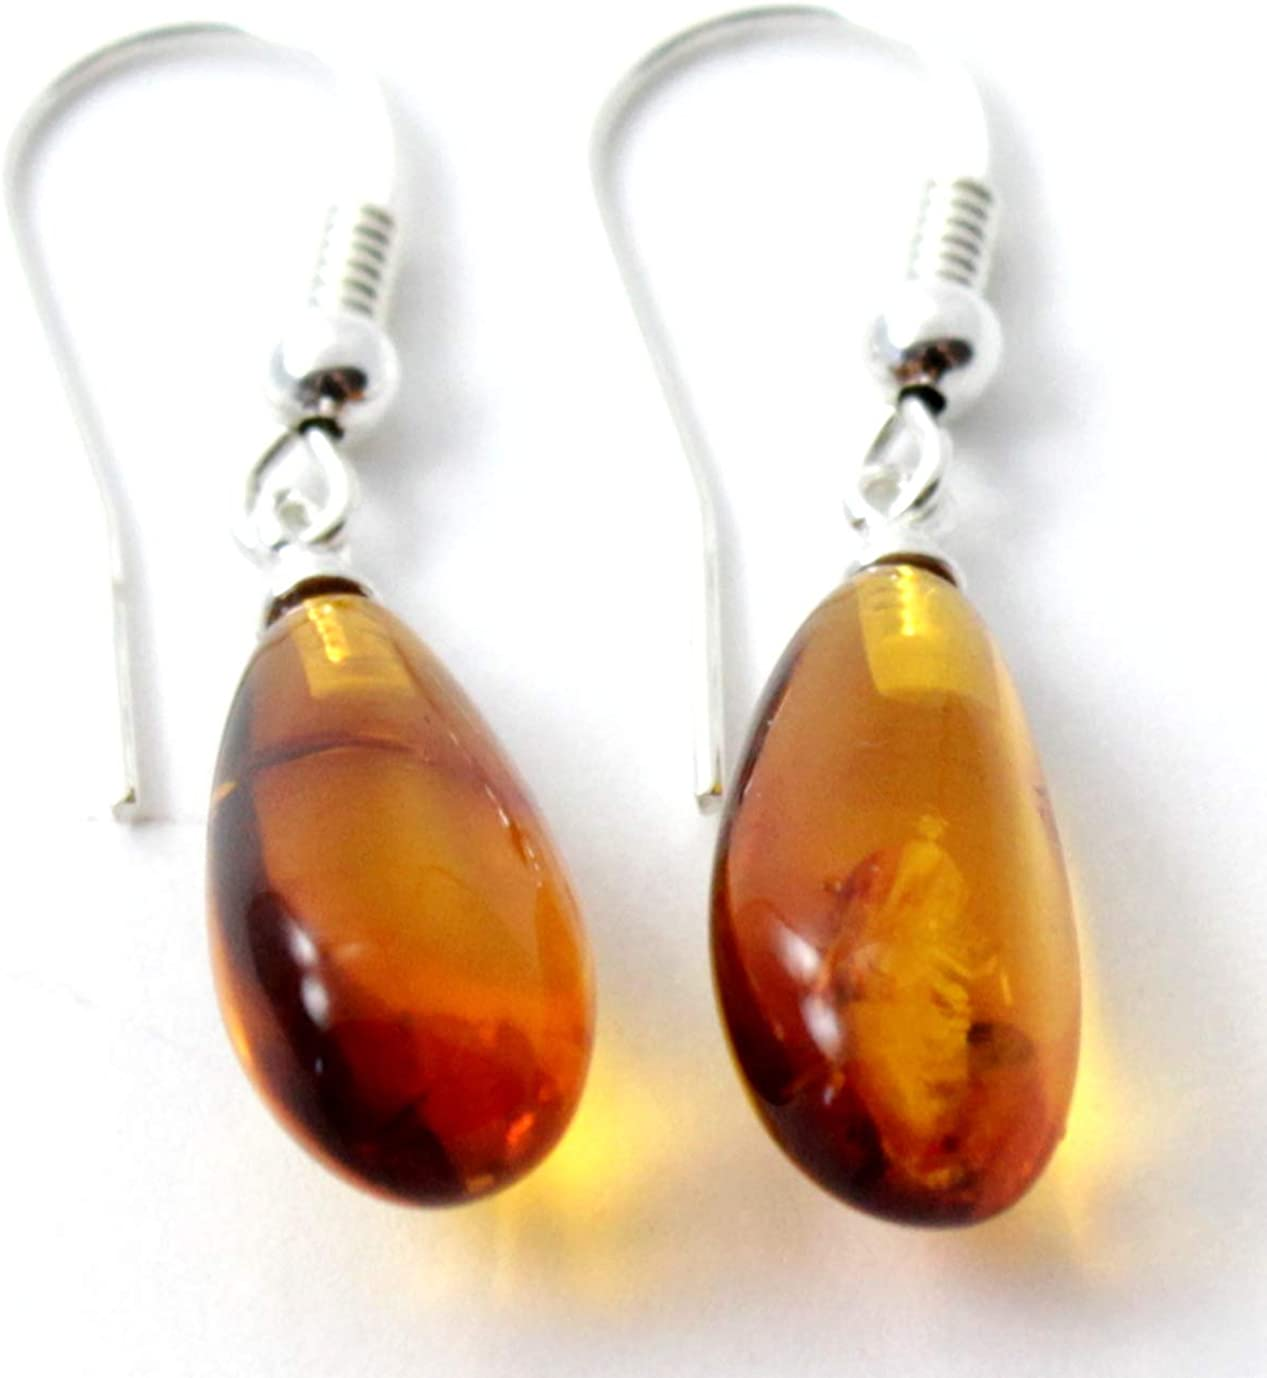 Wire Wrap Baltic Amber Earrings Centered in Sterling Silver Accents Stunning Colors and Design Don\u2019t Limit Your Lifestyle